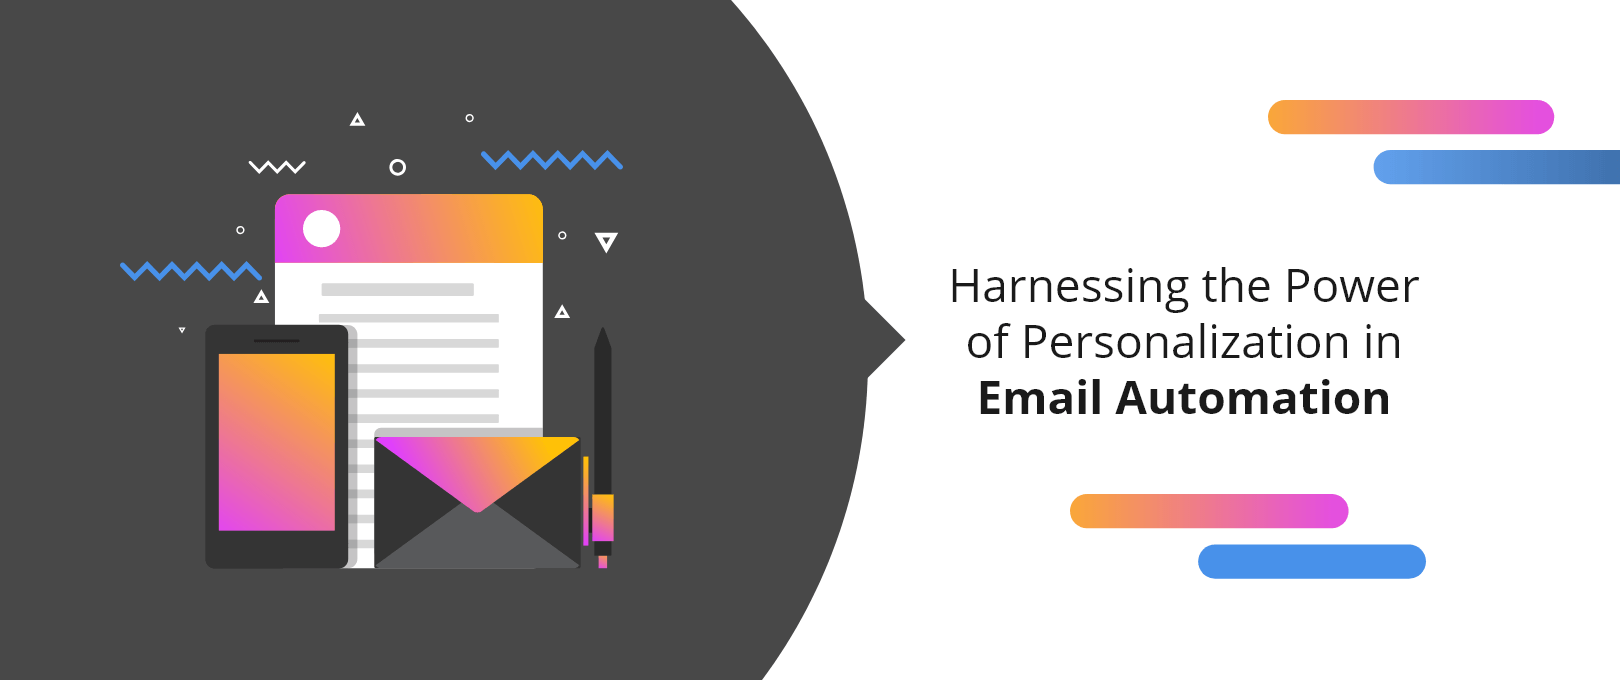 the Power of Personalization in Email Automation